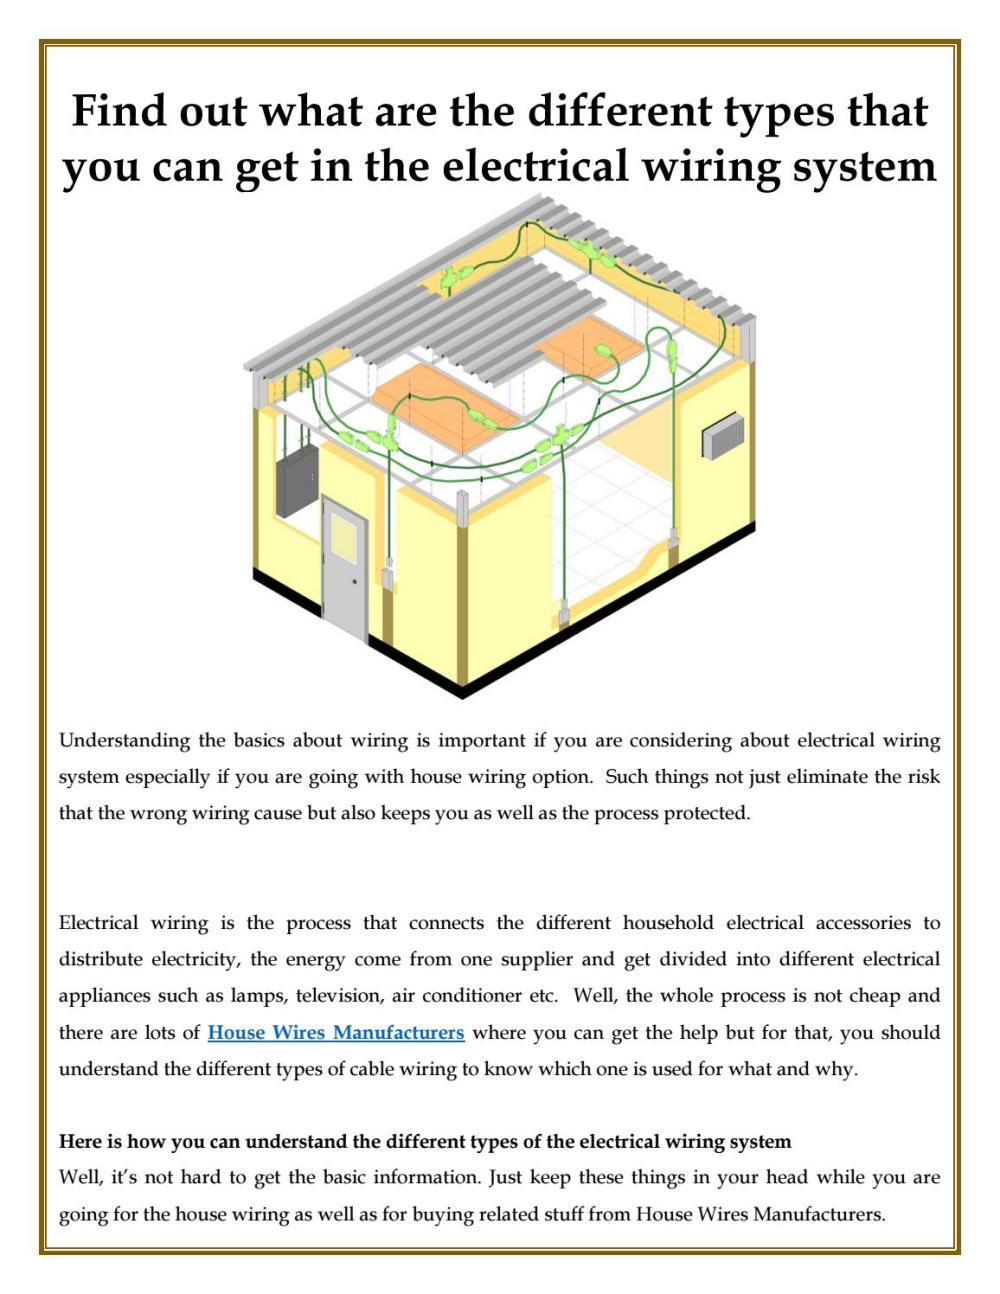 medium resolution of different types that you can get in the electrical wiring system by ultracab issuu